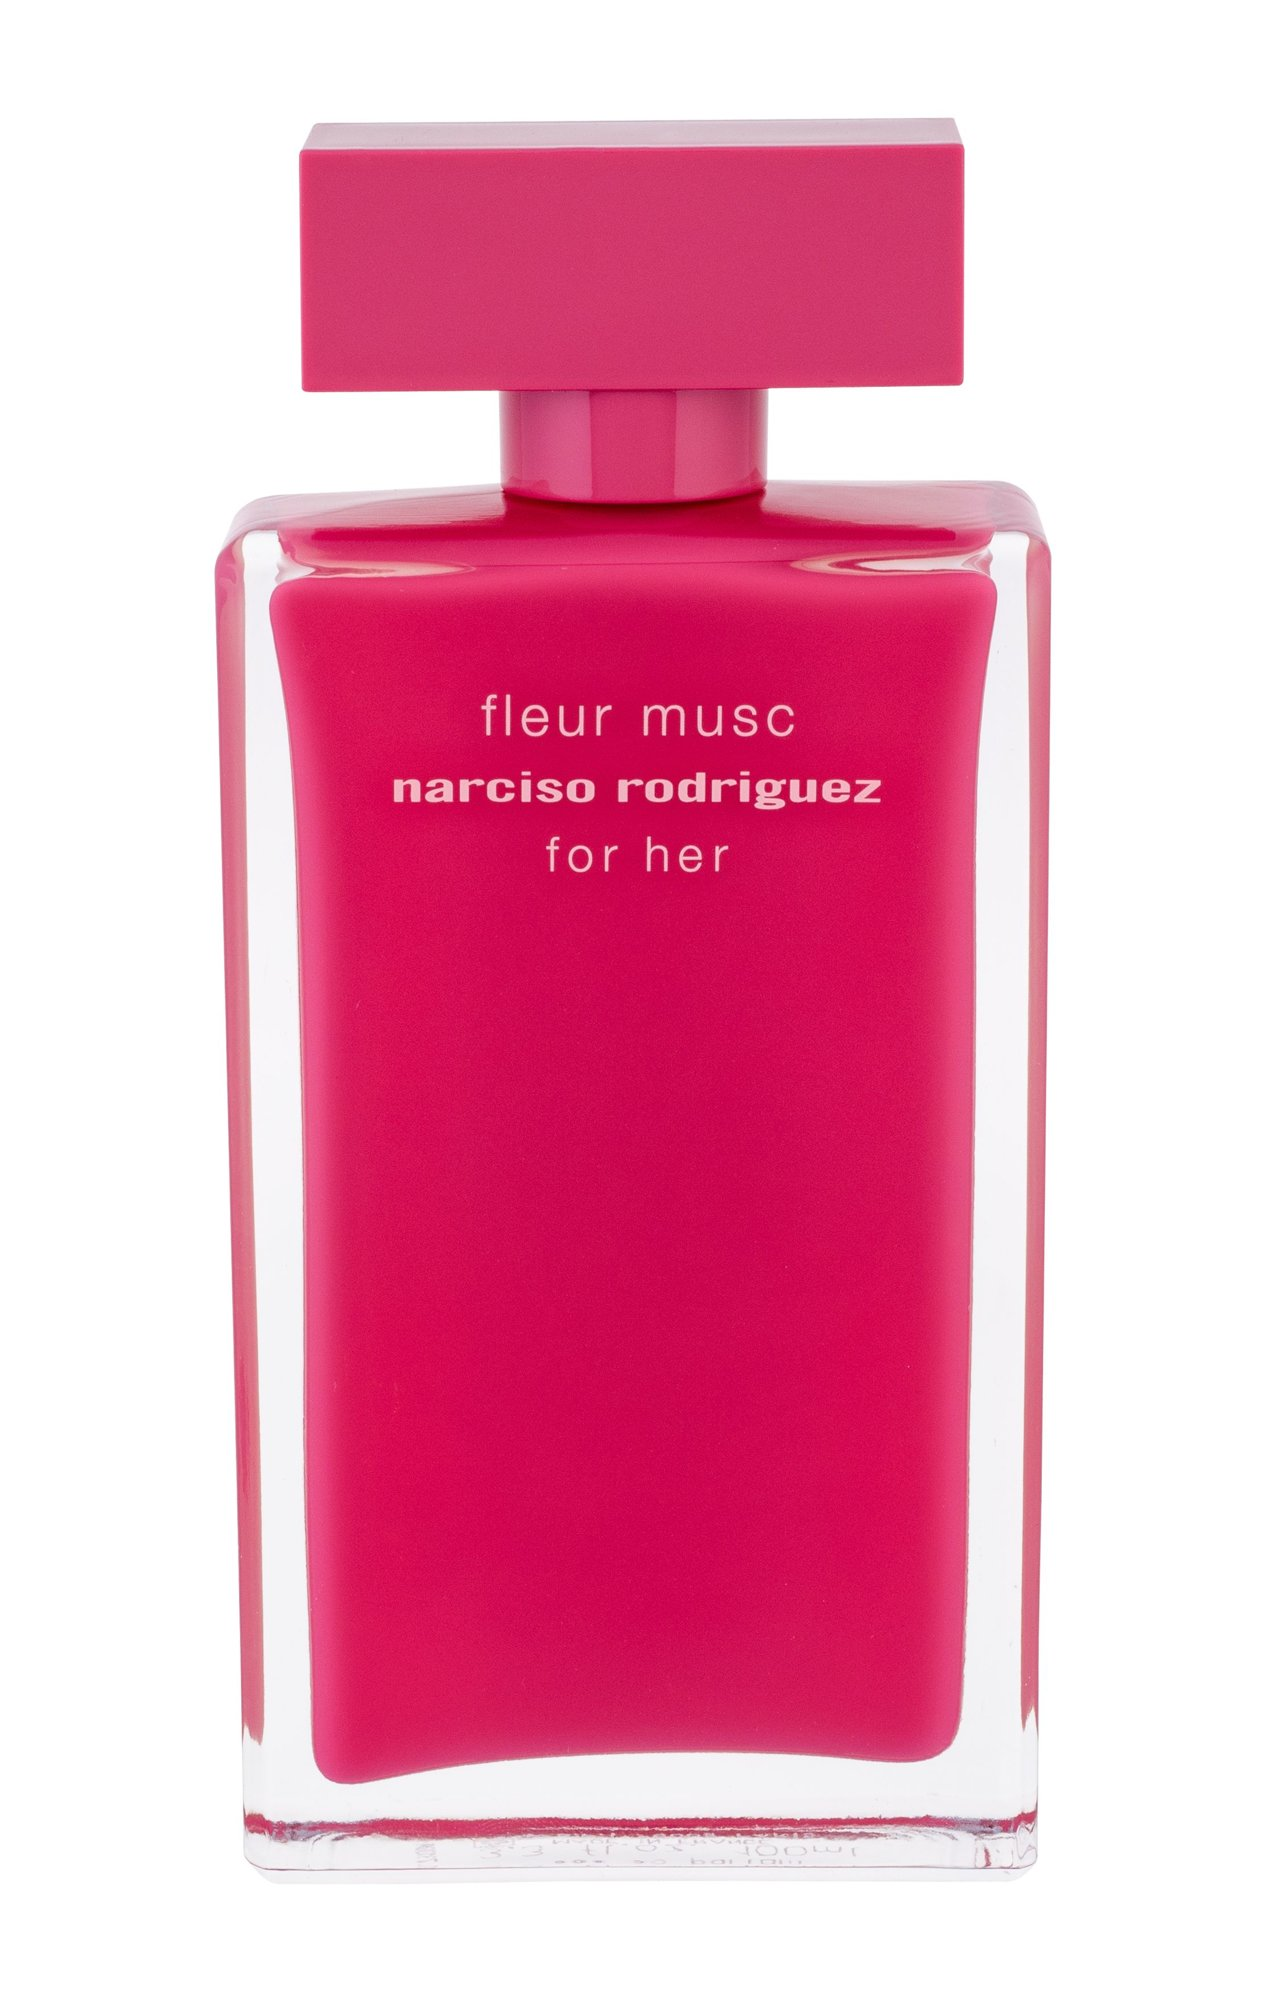 Narciso Rodriguez Fleur Musc for Her EDP 100ml